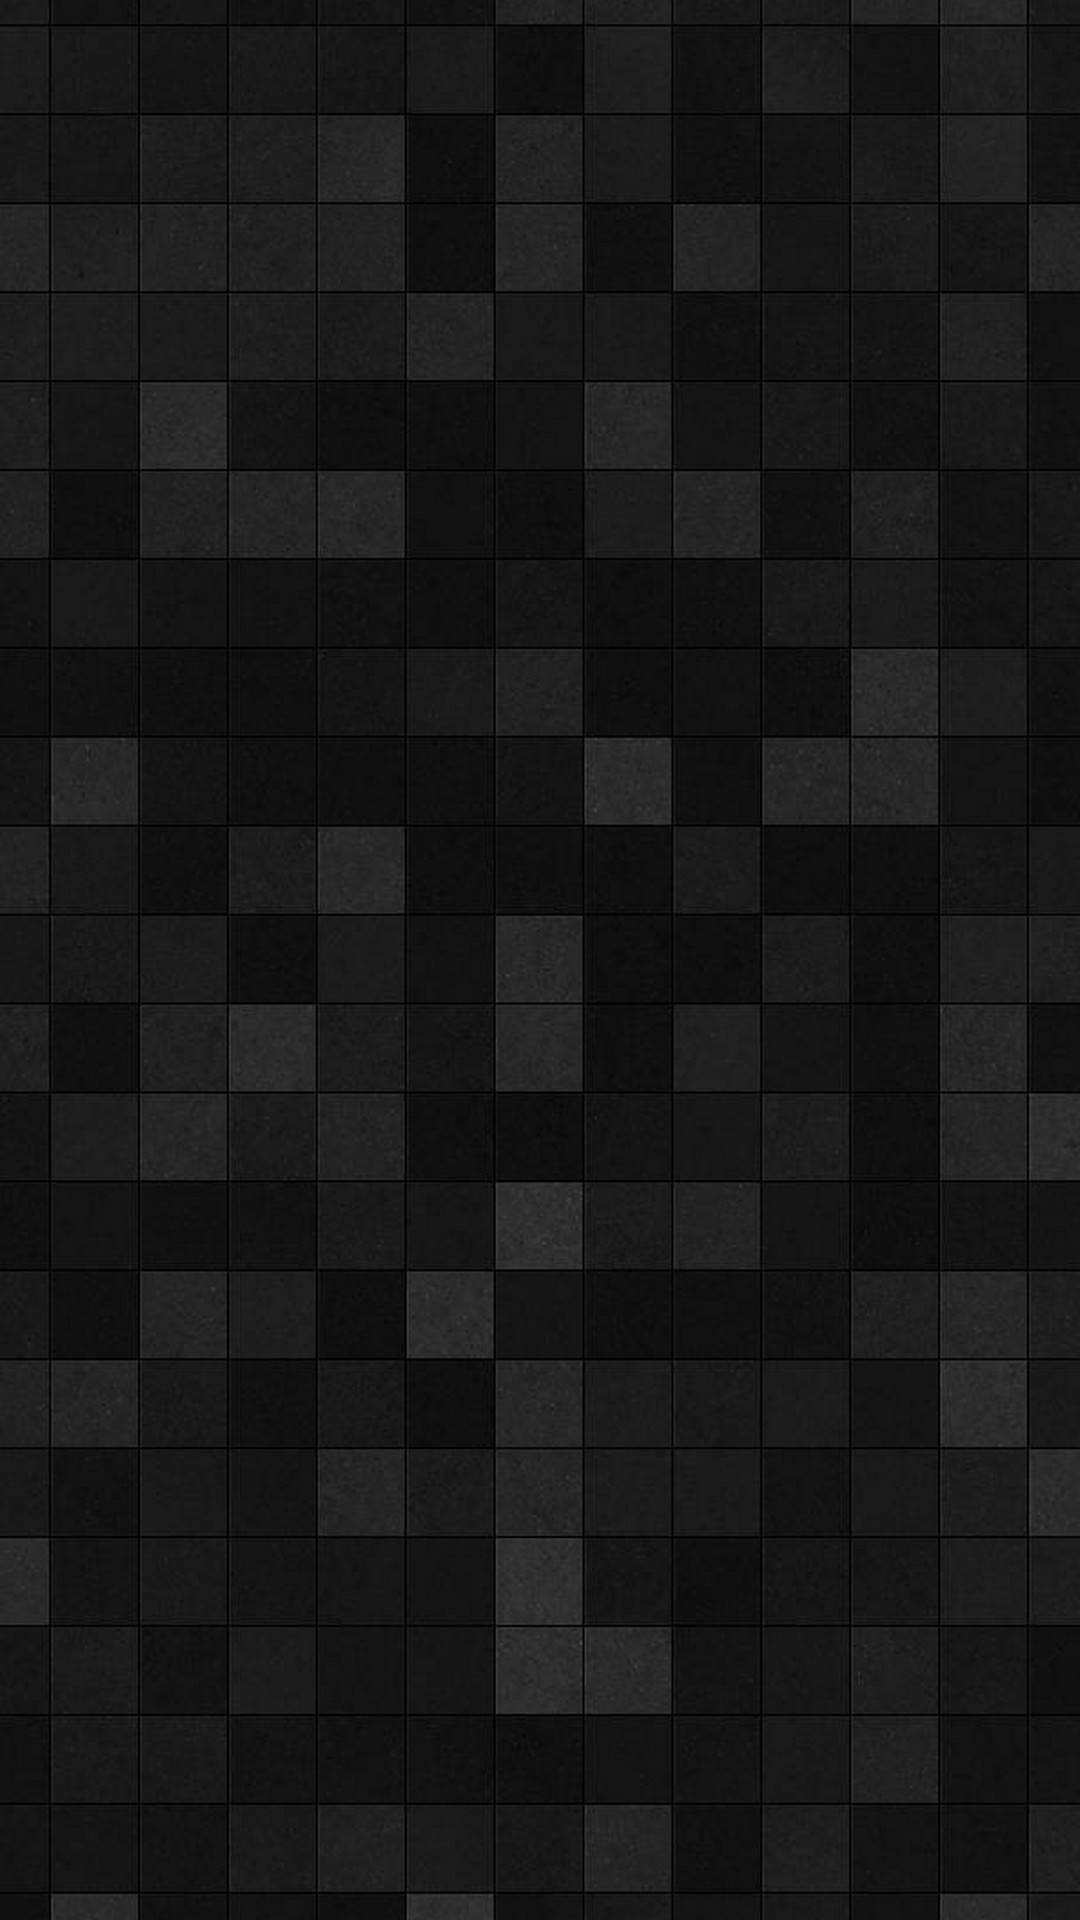 Black Square Wallpapers Top Free Black Square Backgrounds